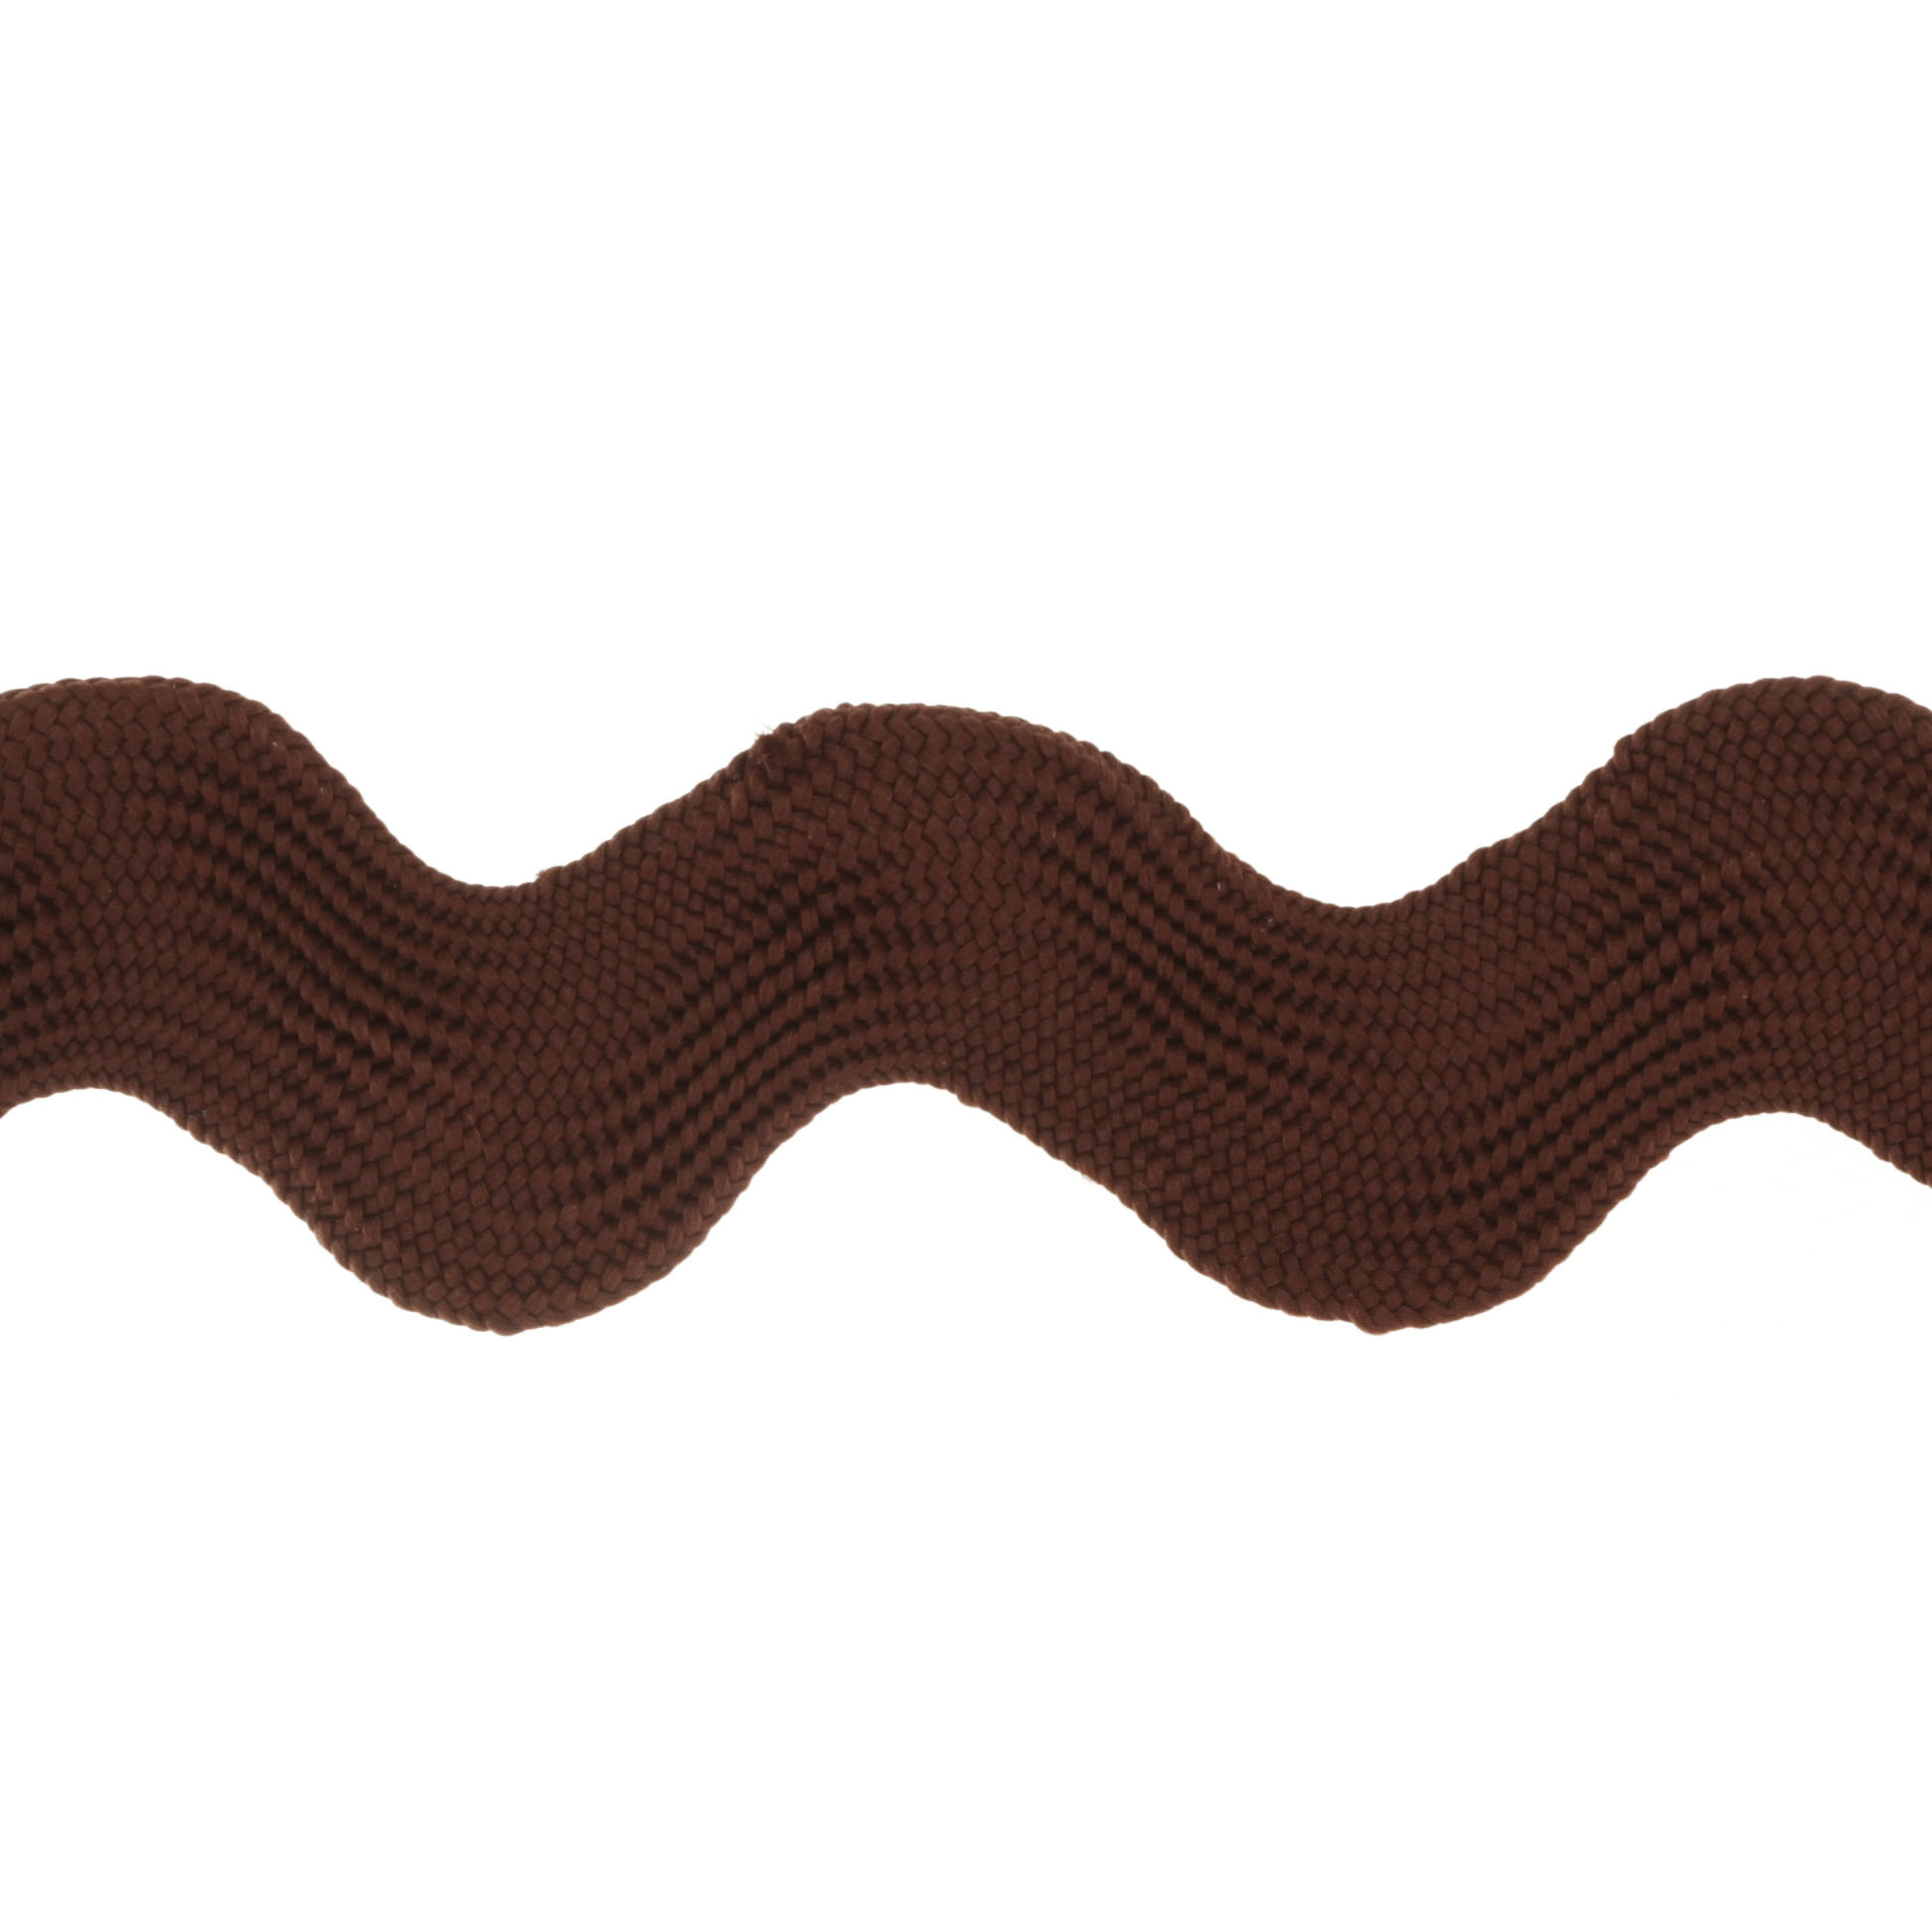 Riley Blake 1 1/2'' Jumbo Ric Rac Brown